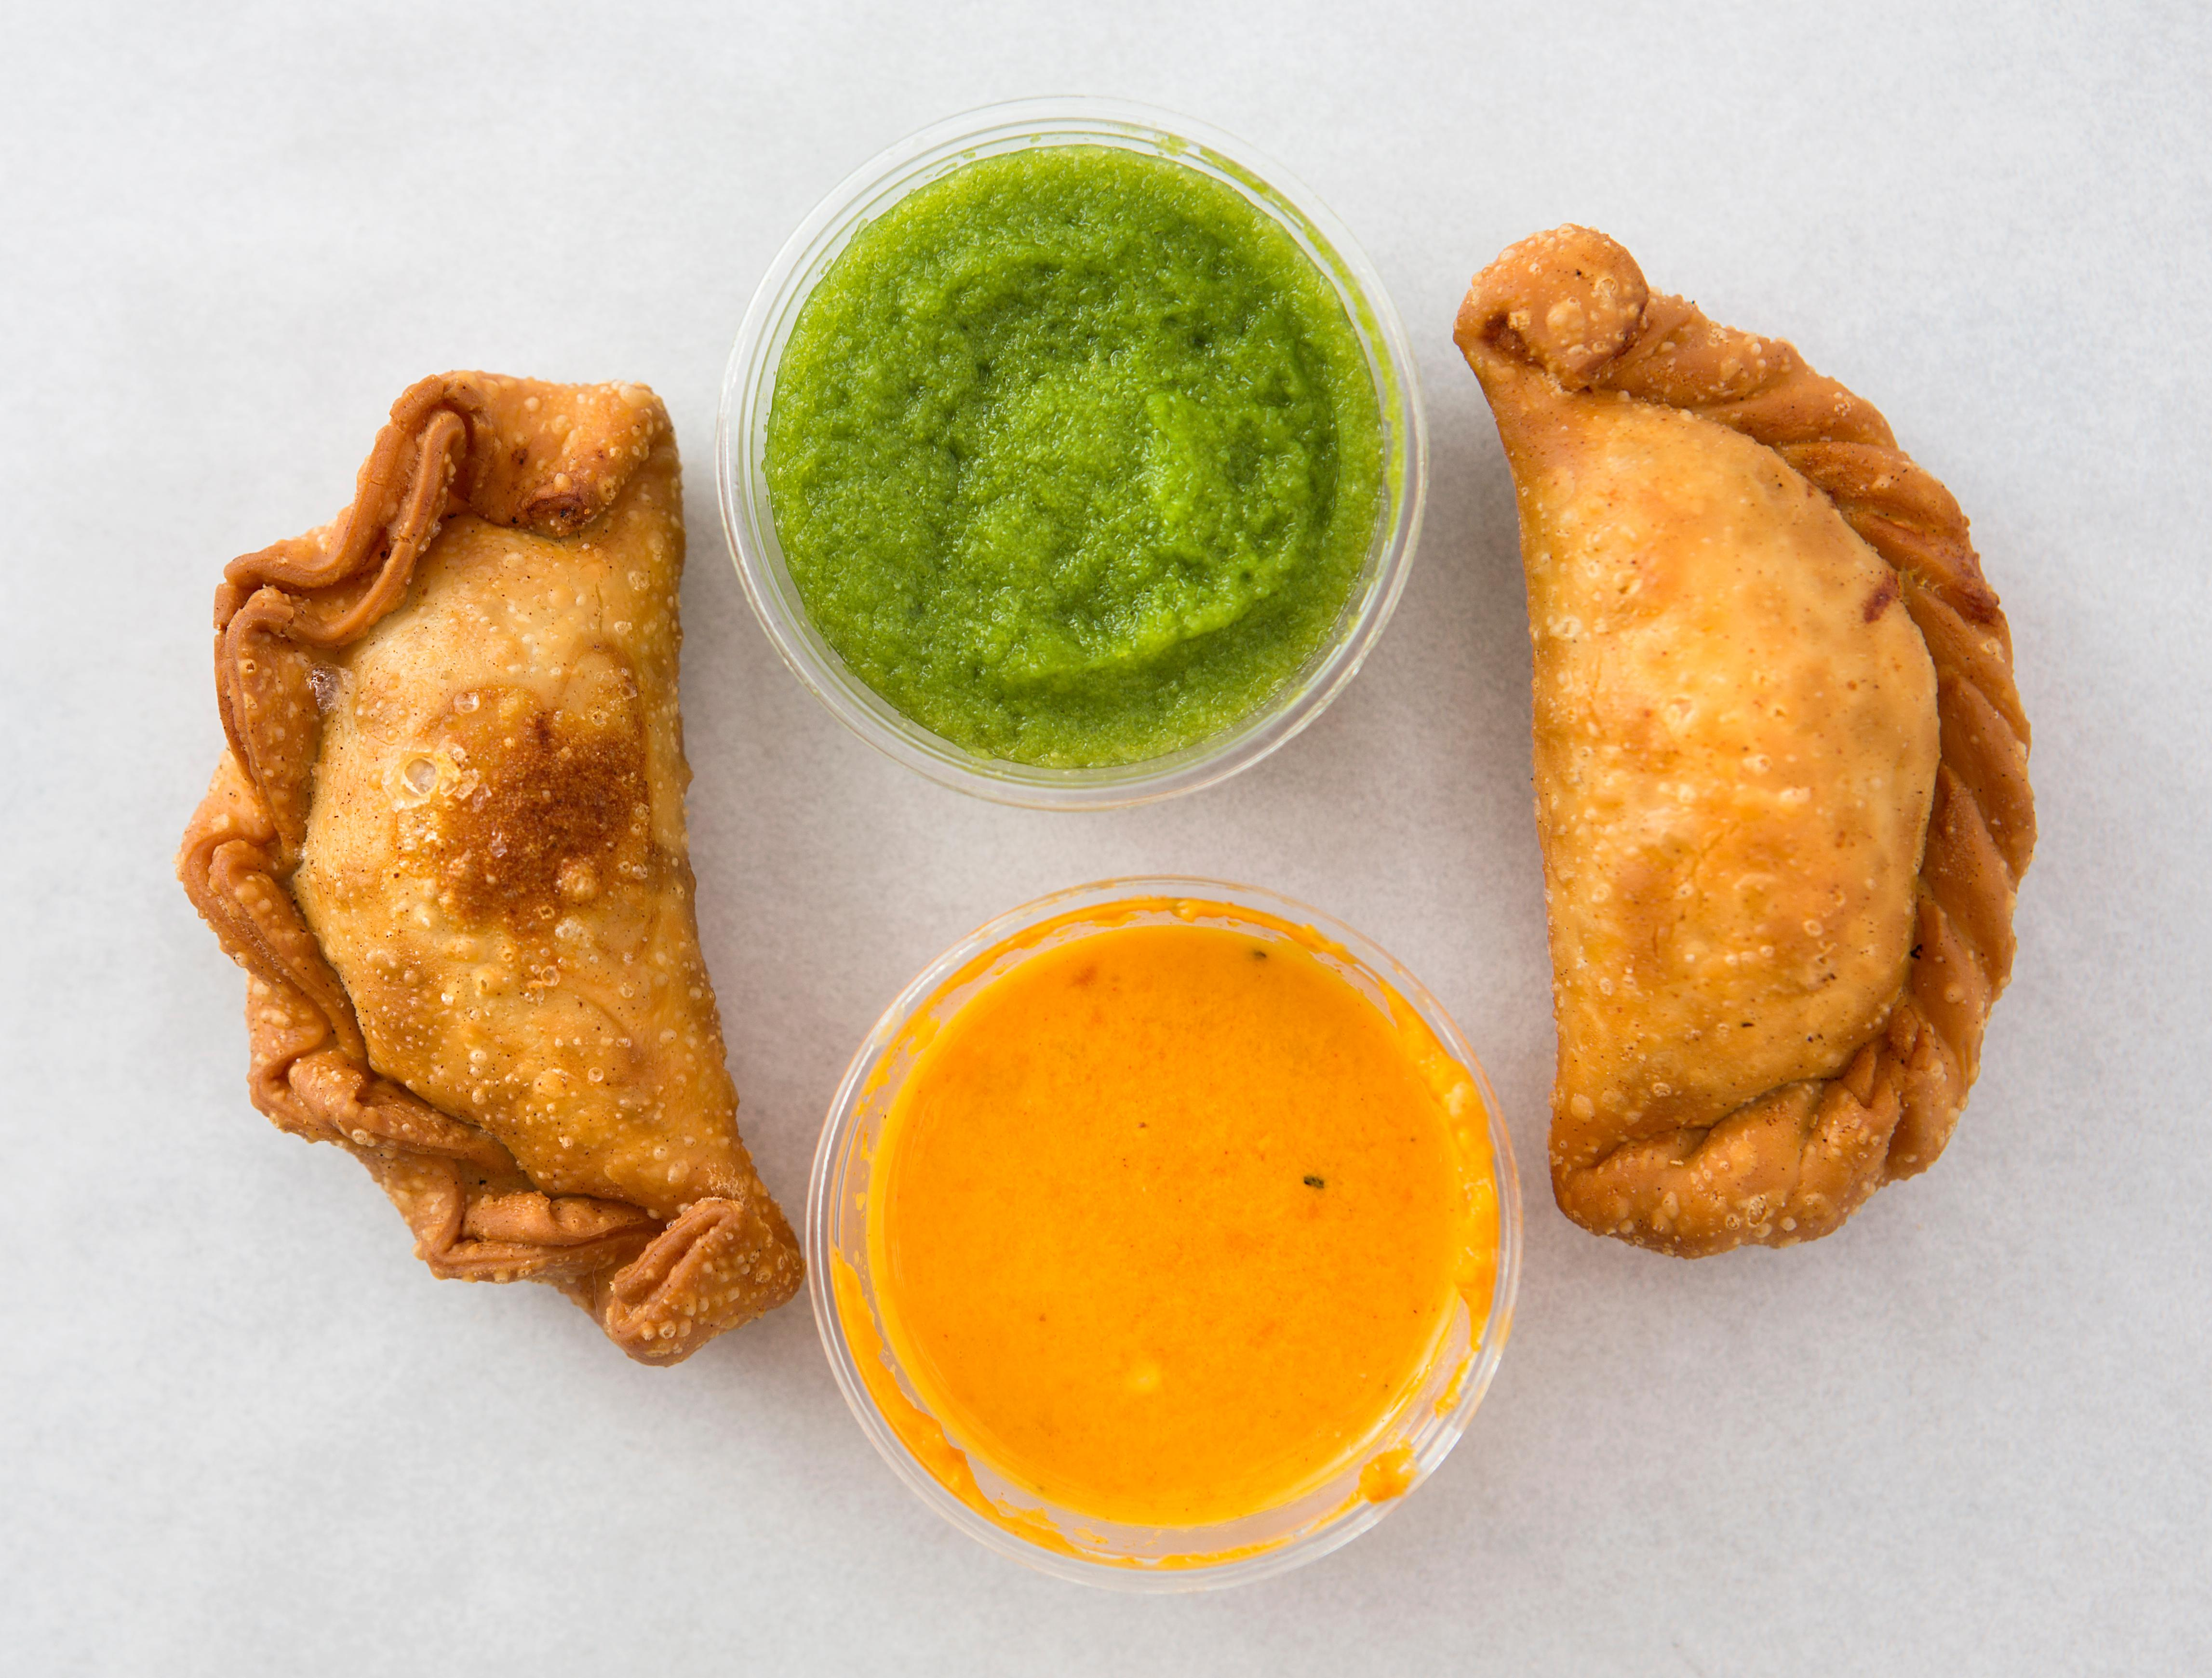 Big Chickie: Pollo a la Brasa, is a Peruvian-inspired restaurant located in Hillman City. Owner and General Manager Matt Stubbs serves up fried empanadas with various housemade hot sauces. The restaurant is located at 5520 Rainier Ave S, Seattle, WA 98118. (Sy Bean / Seattle Refined)